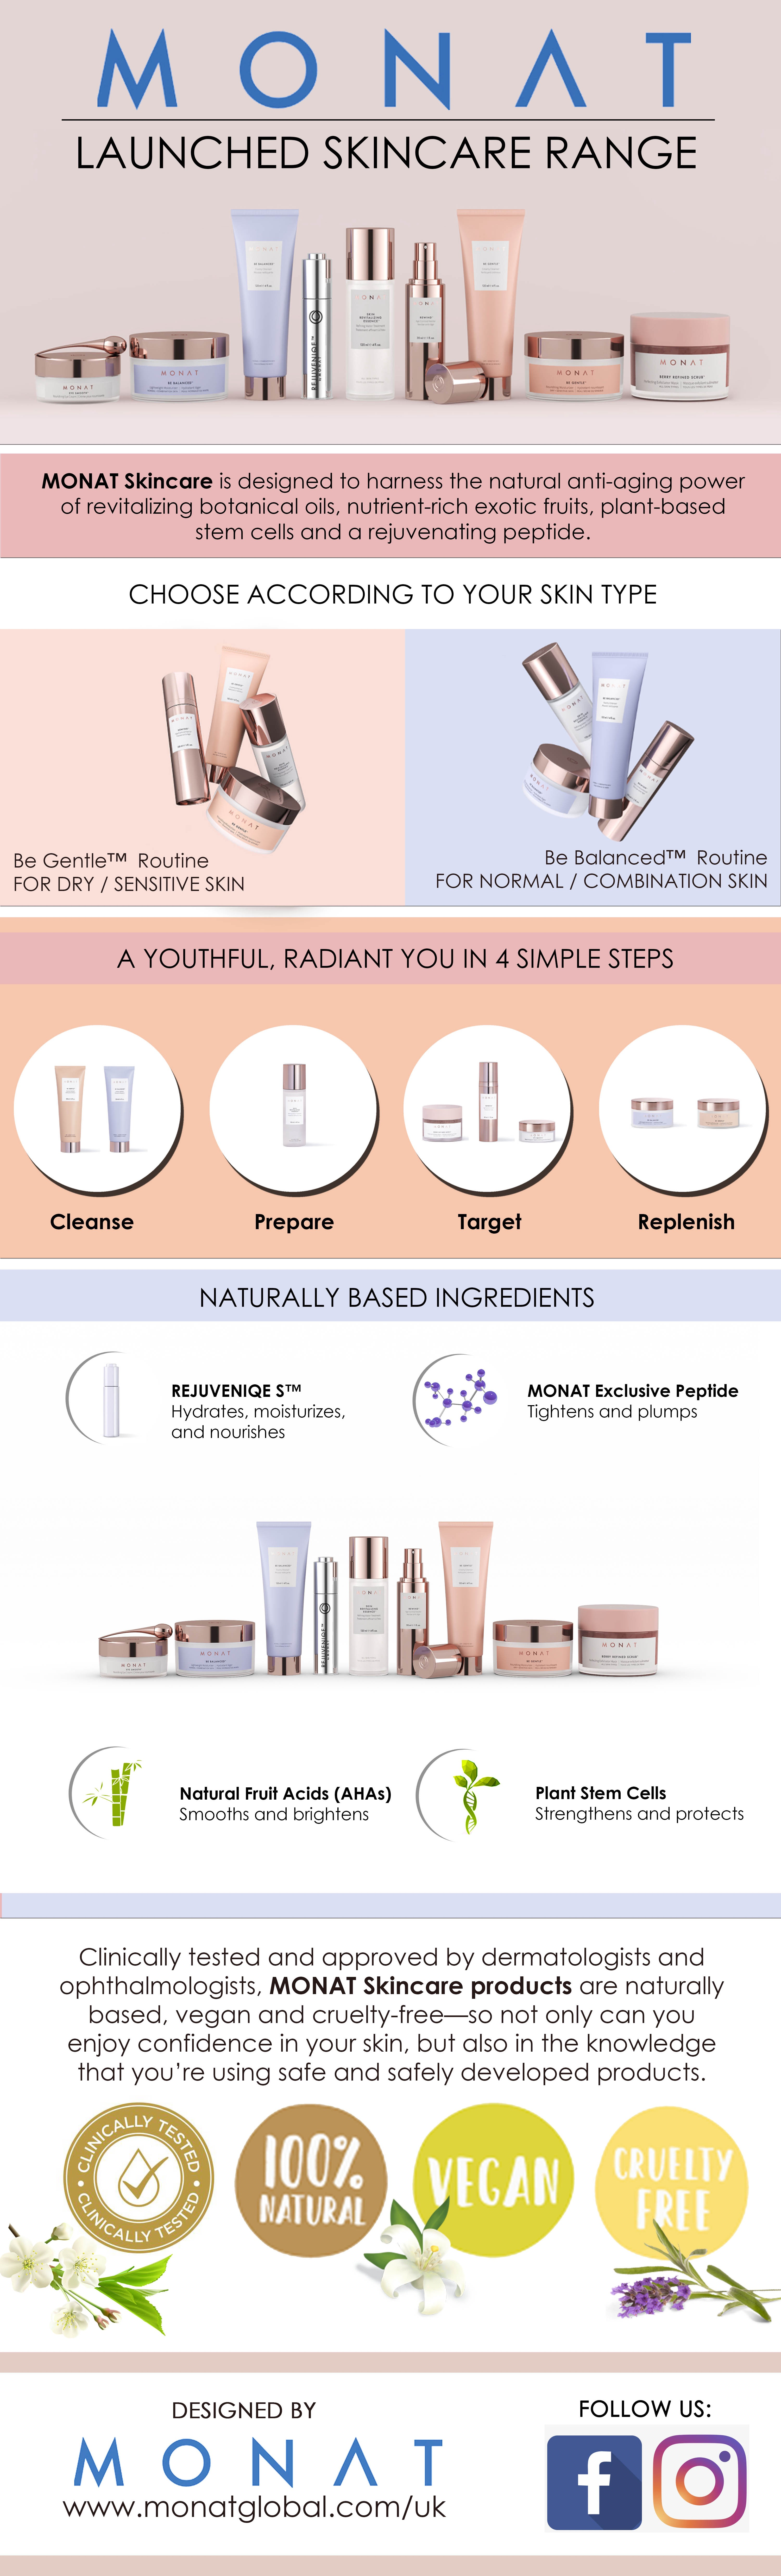 Monat Launches Skincare Range Monat Skincare Is Designed To Harness By Monat Global Uk Medium